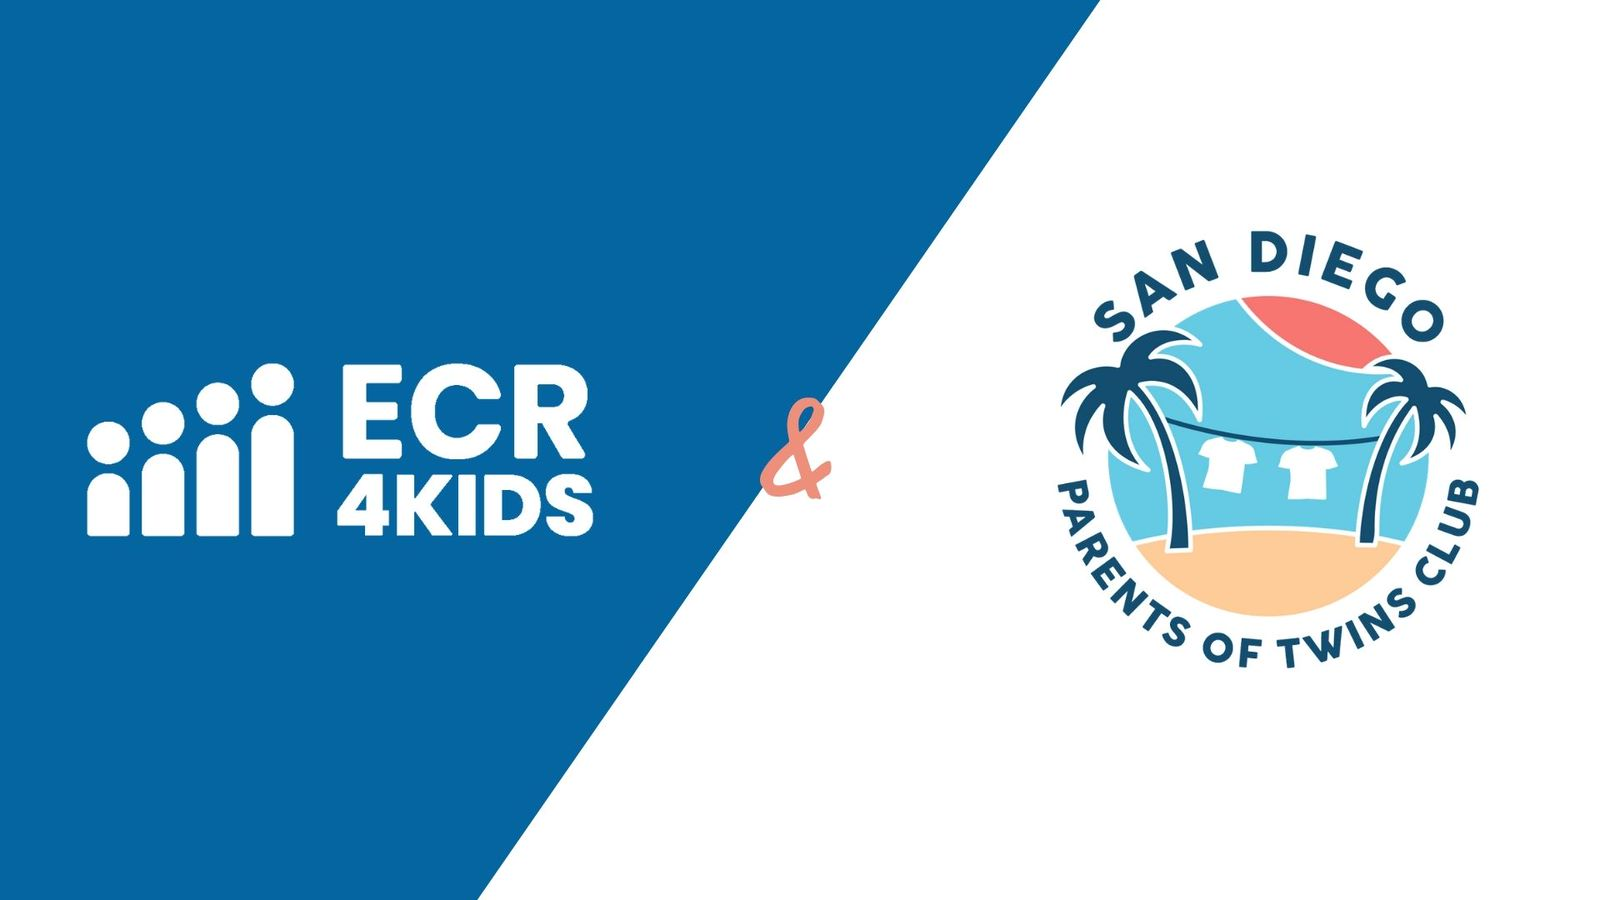 ECR4Kids and The San Diego Parents of Twins Club